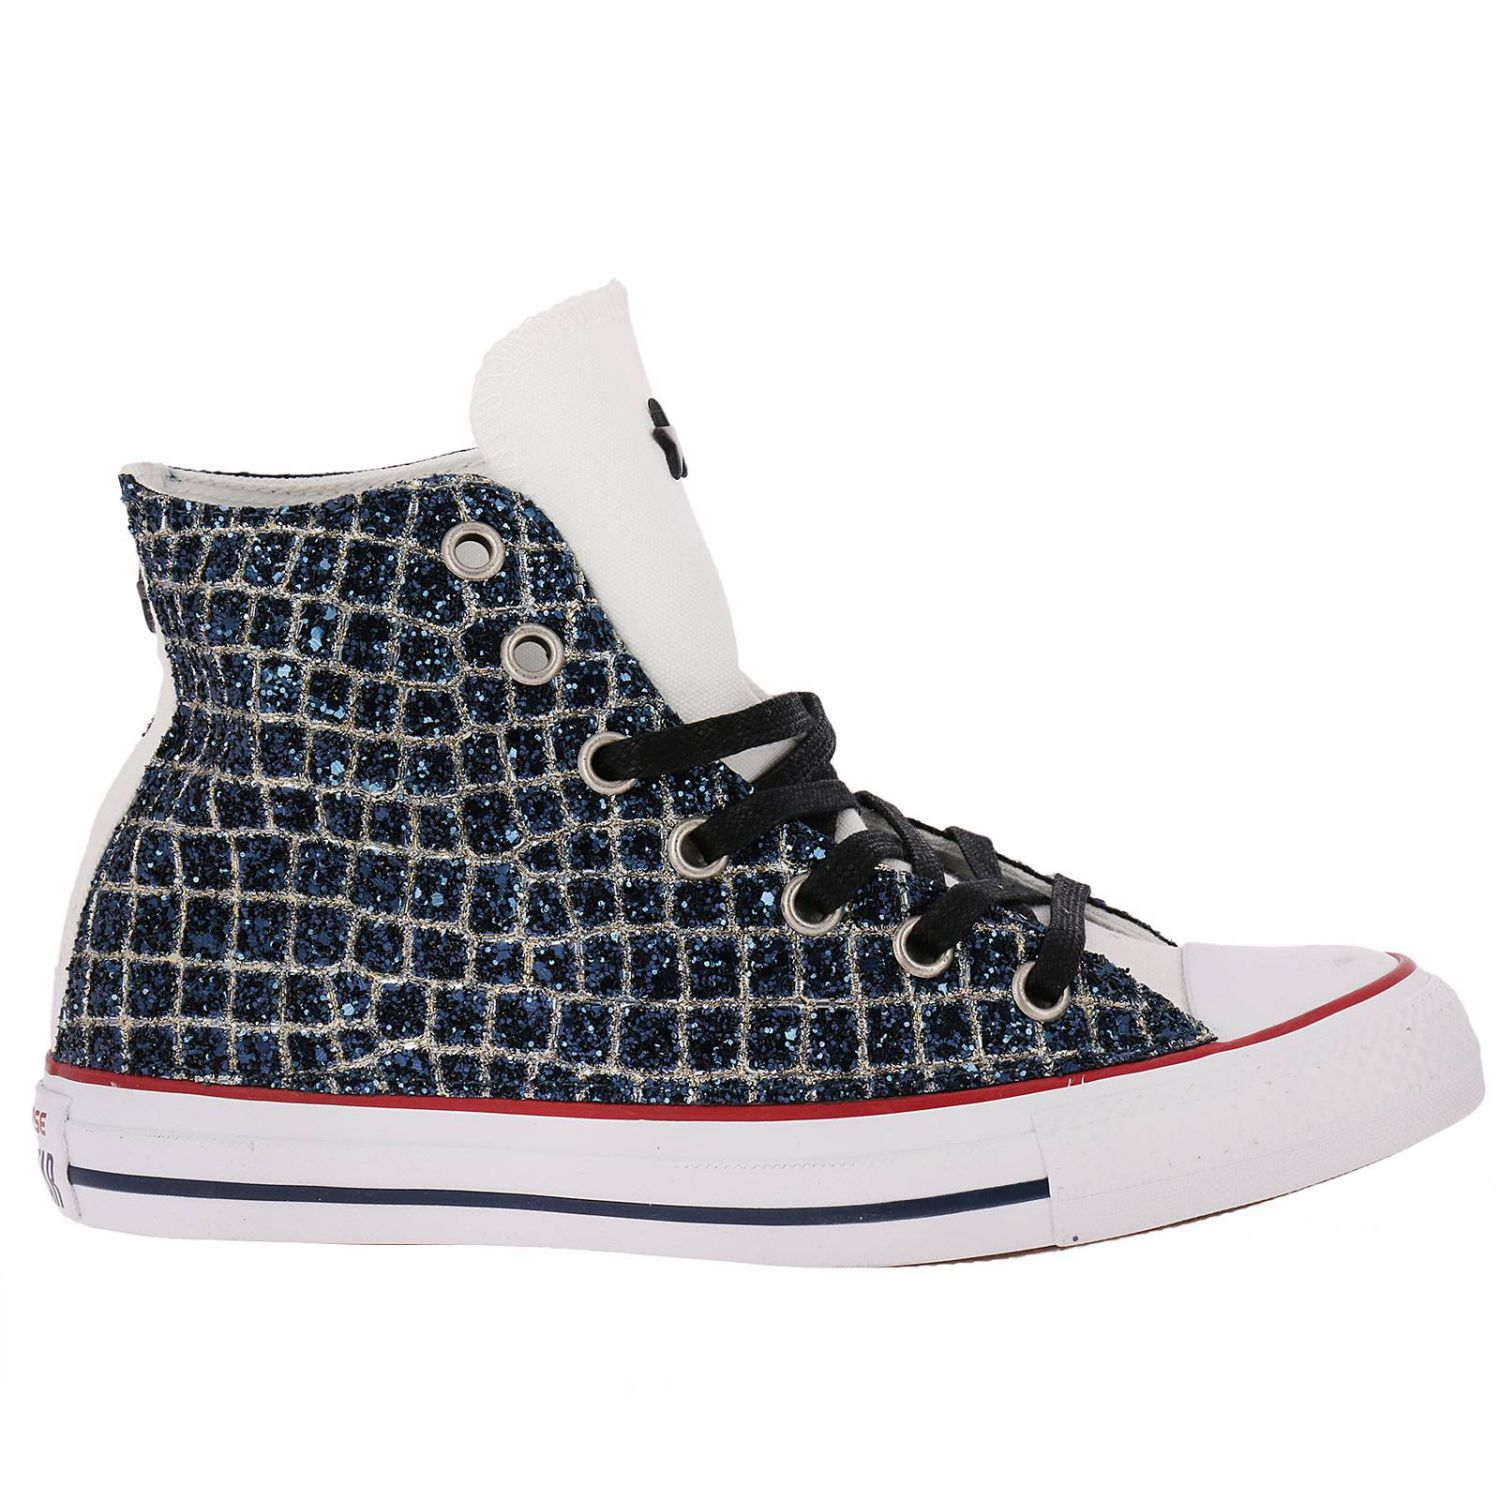 Sneakers Sneakers Women Converse Limited Edition 8372502